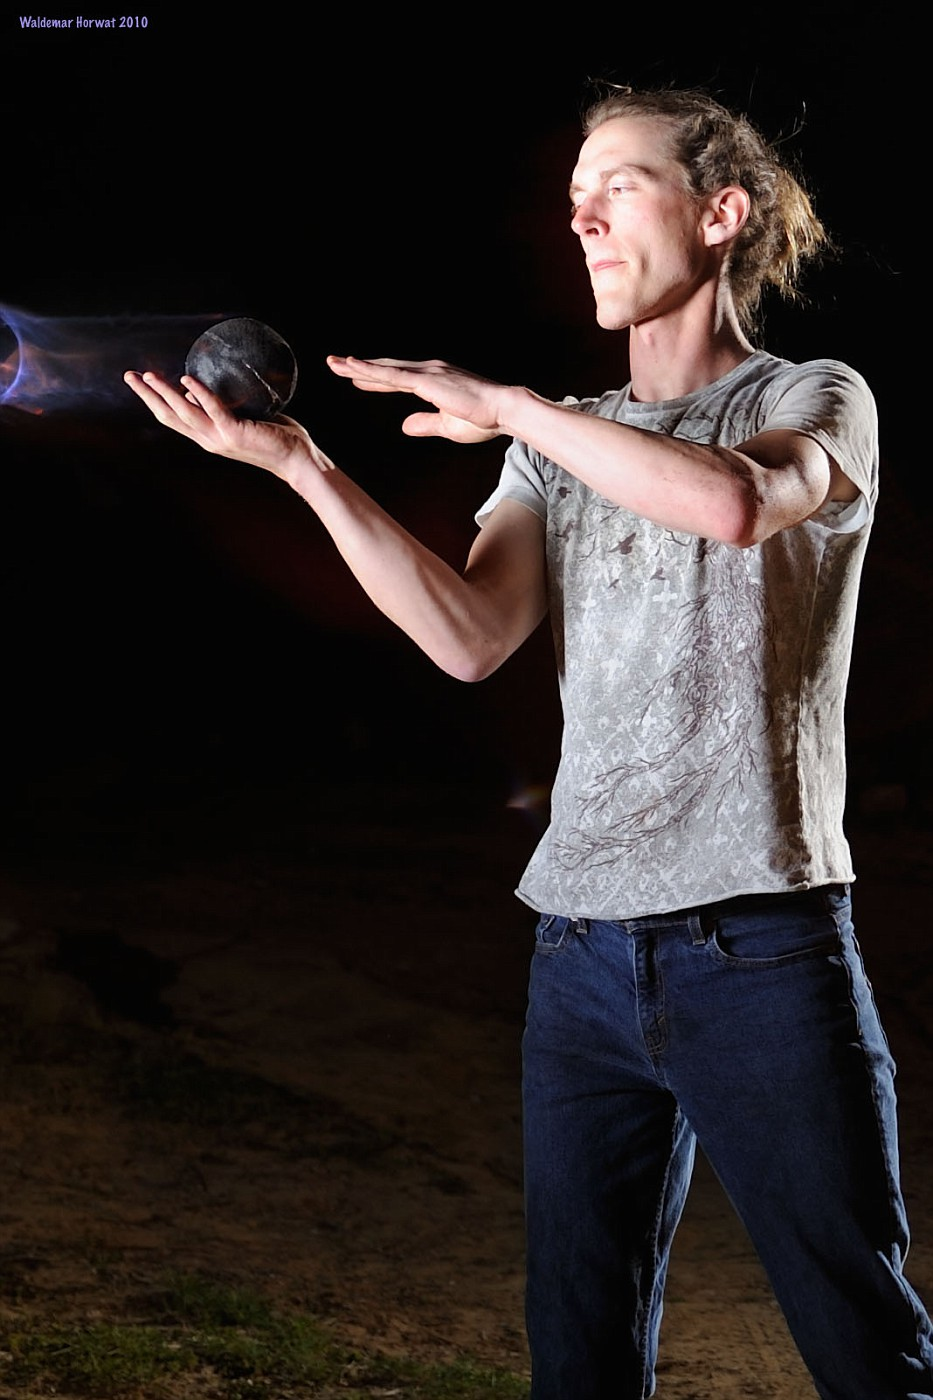 Contact Fire Juggling